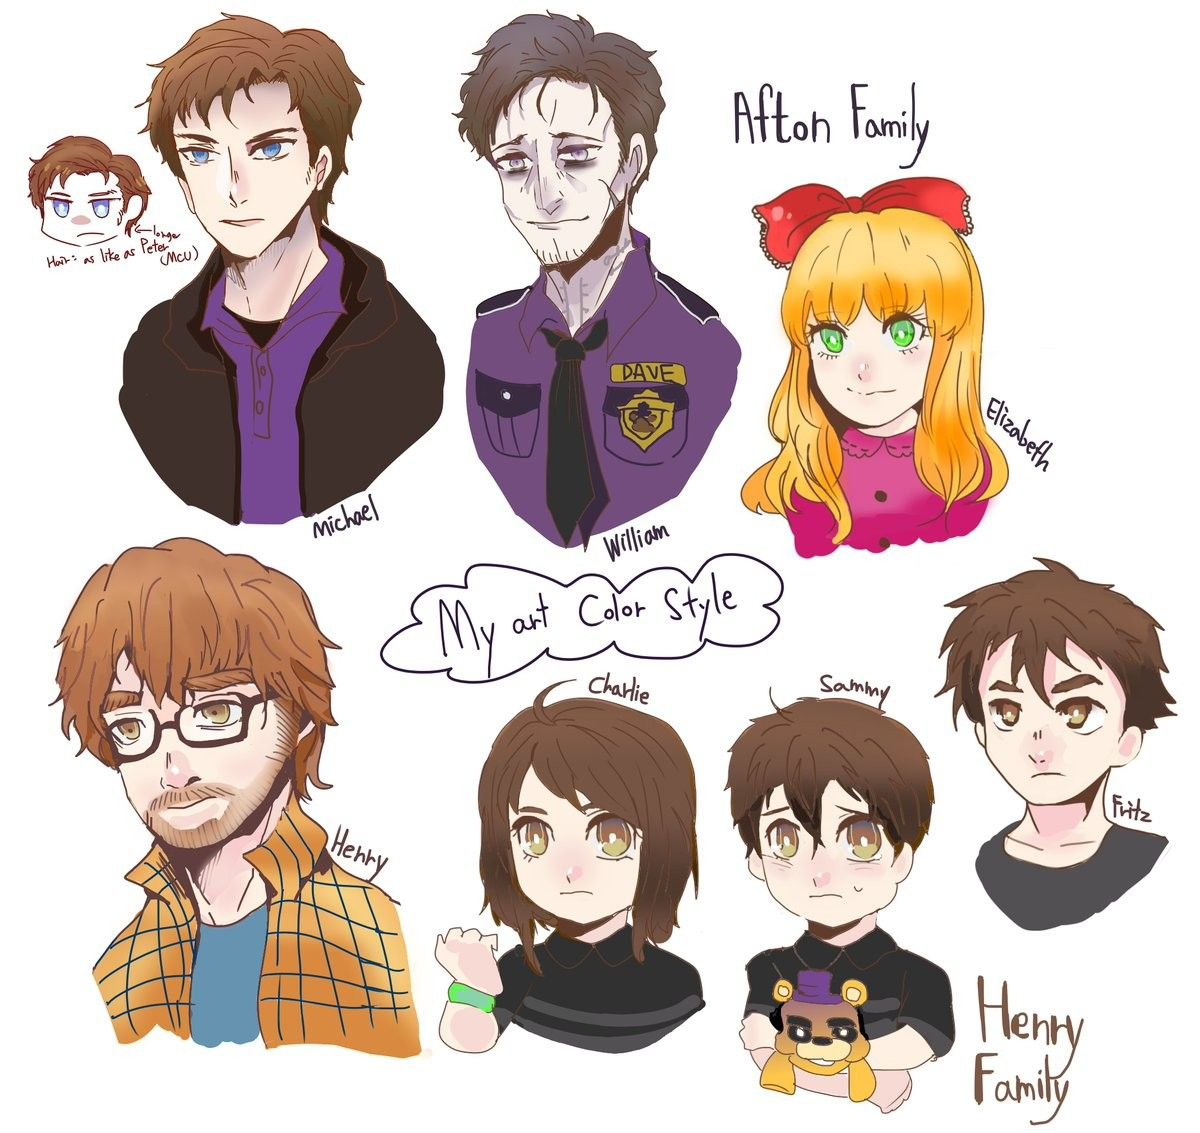 Afton Family Henry Family In 2020 Fnaf Characters Fnaf Drawings Anime Fnaf